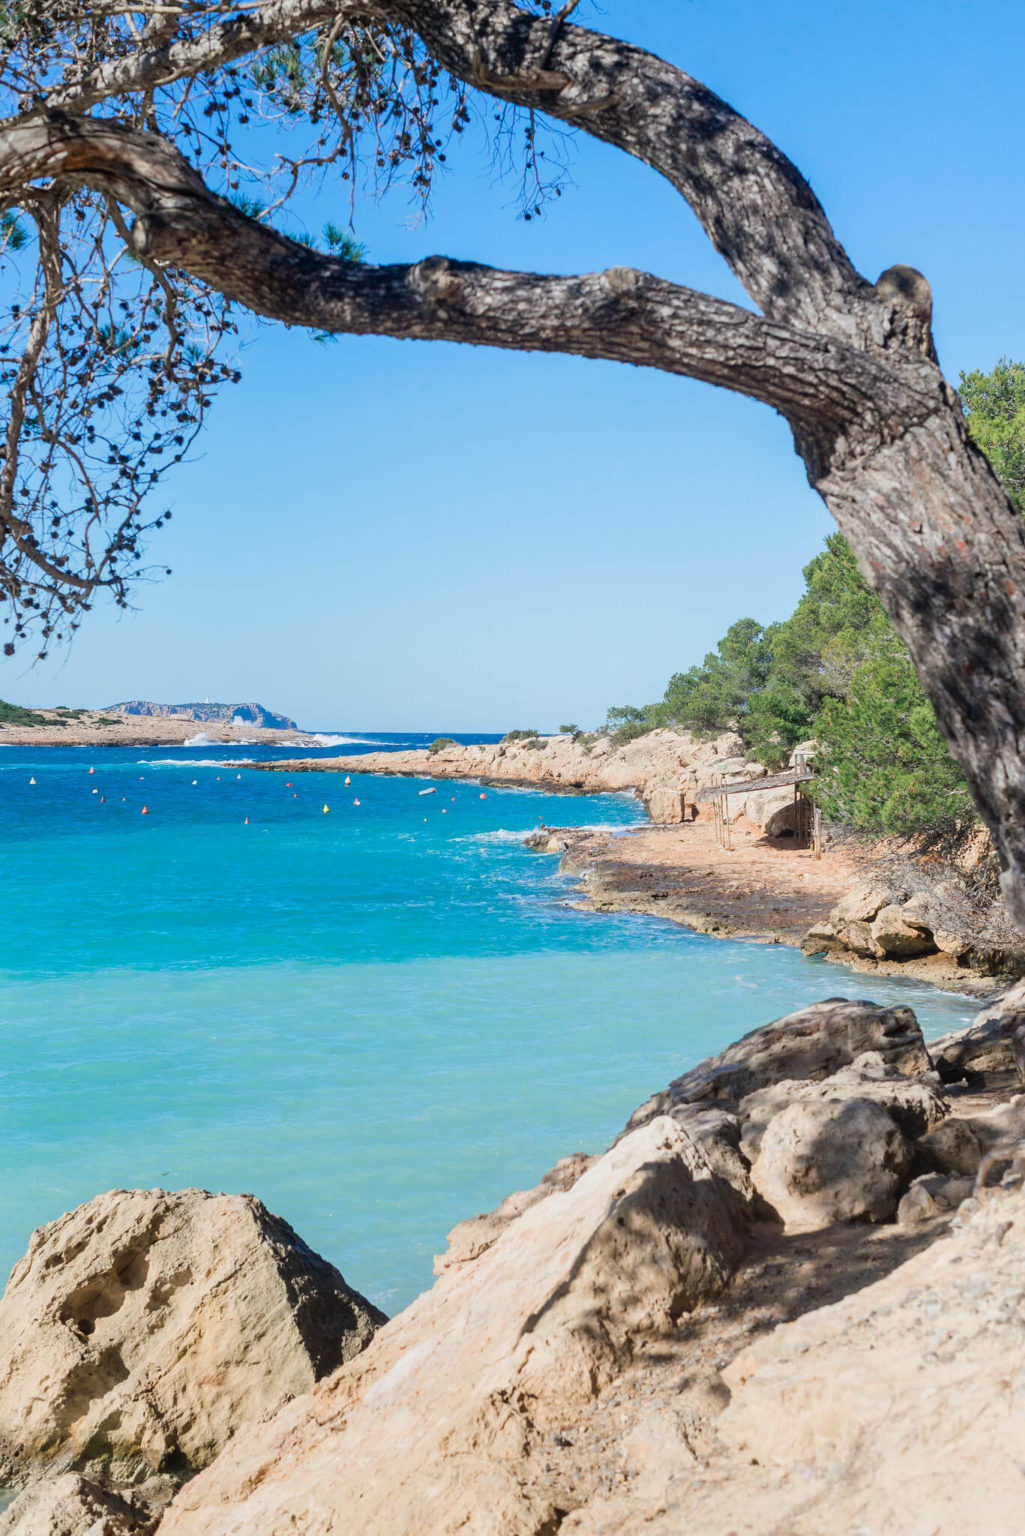 https://www.white-ibiza.com/wp-content/uploads/2020/03/ibiza-beaches-port-des-torrent-05-1025x1536.jpg